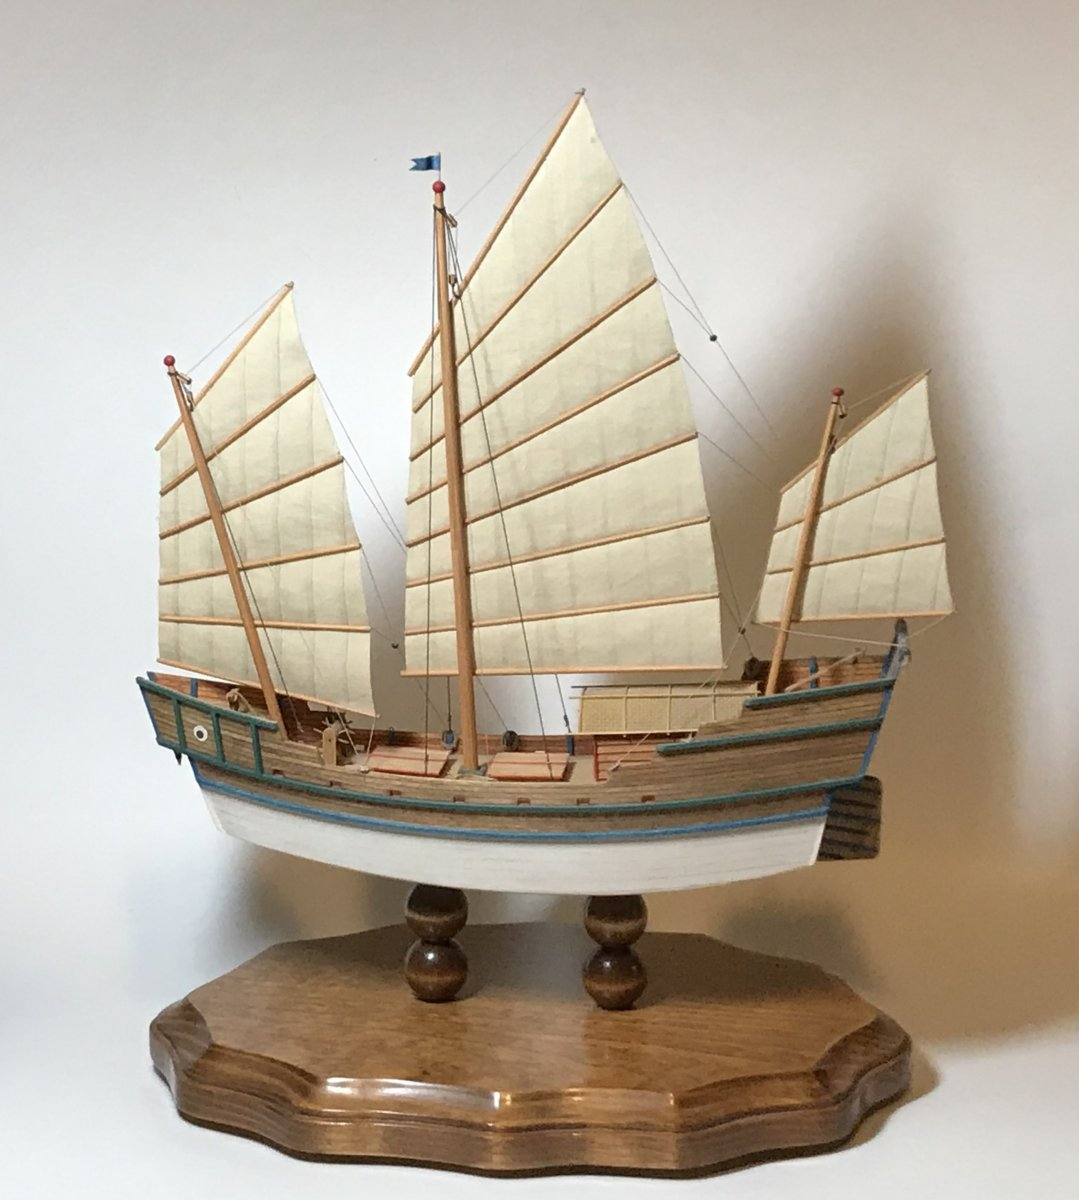 Chinese Junk (Fictional)